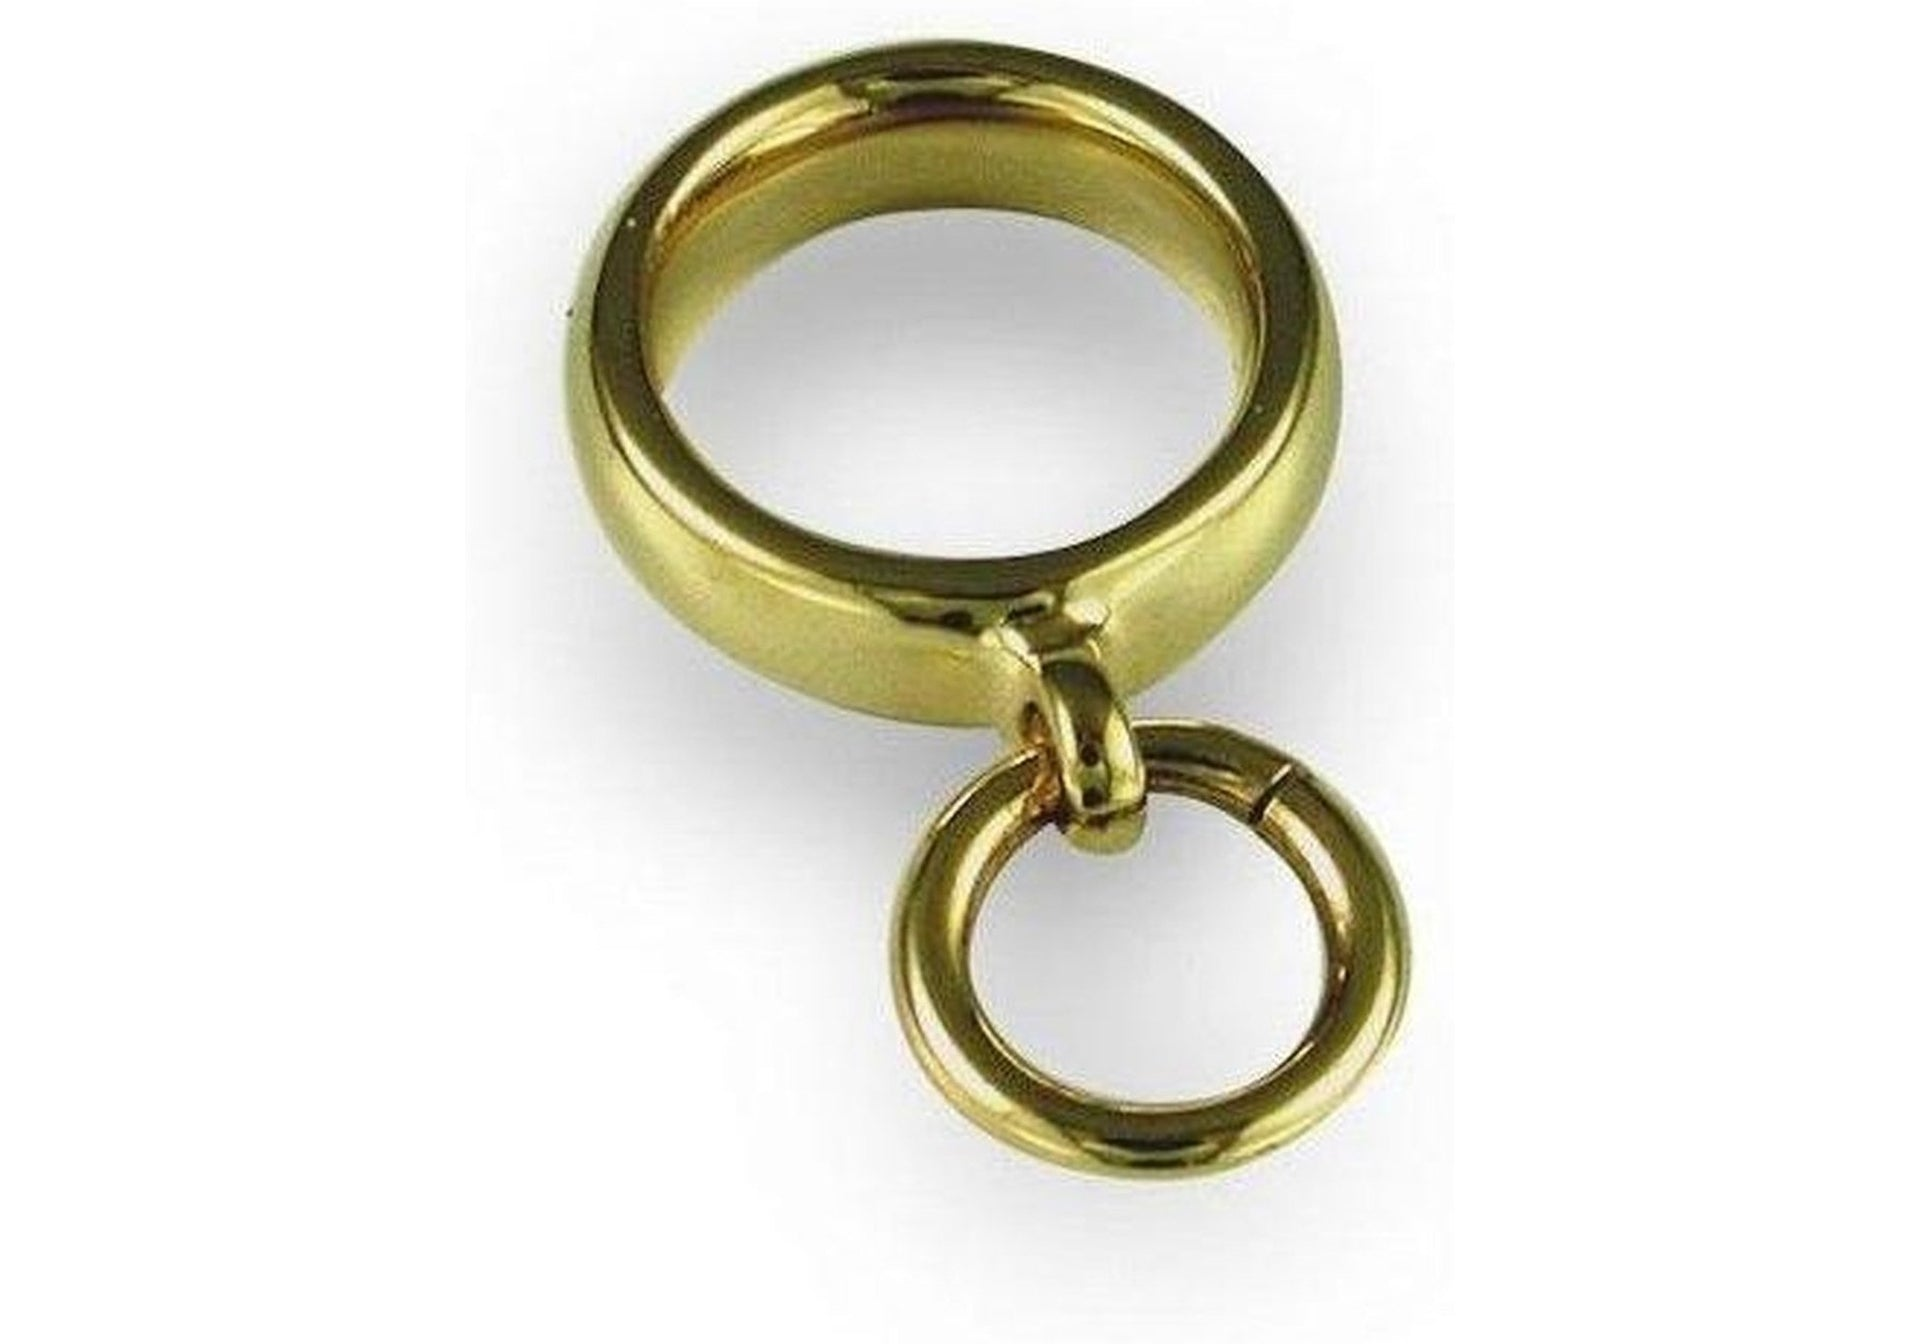 Replica Ring Charm   - Jens Hansen - 1